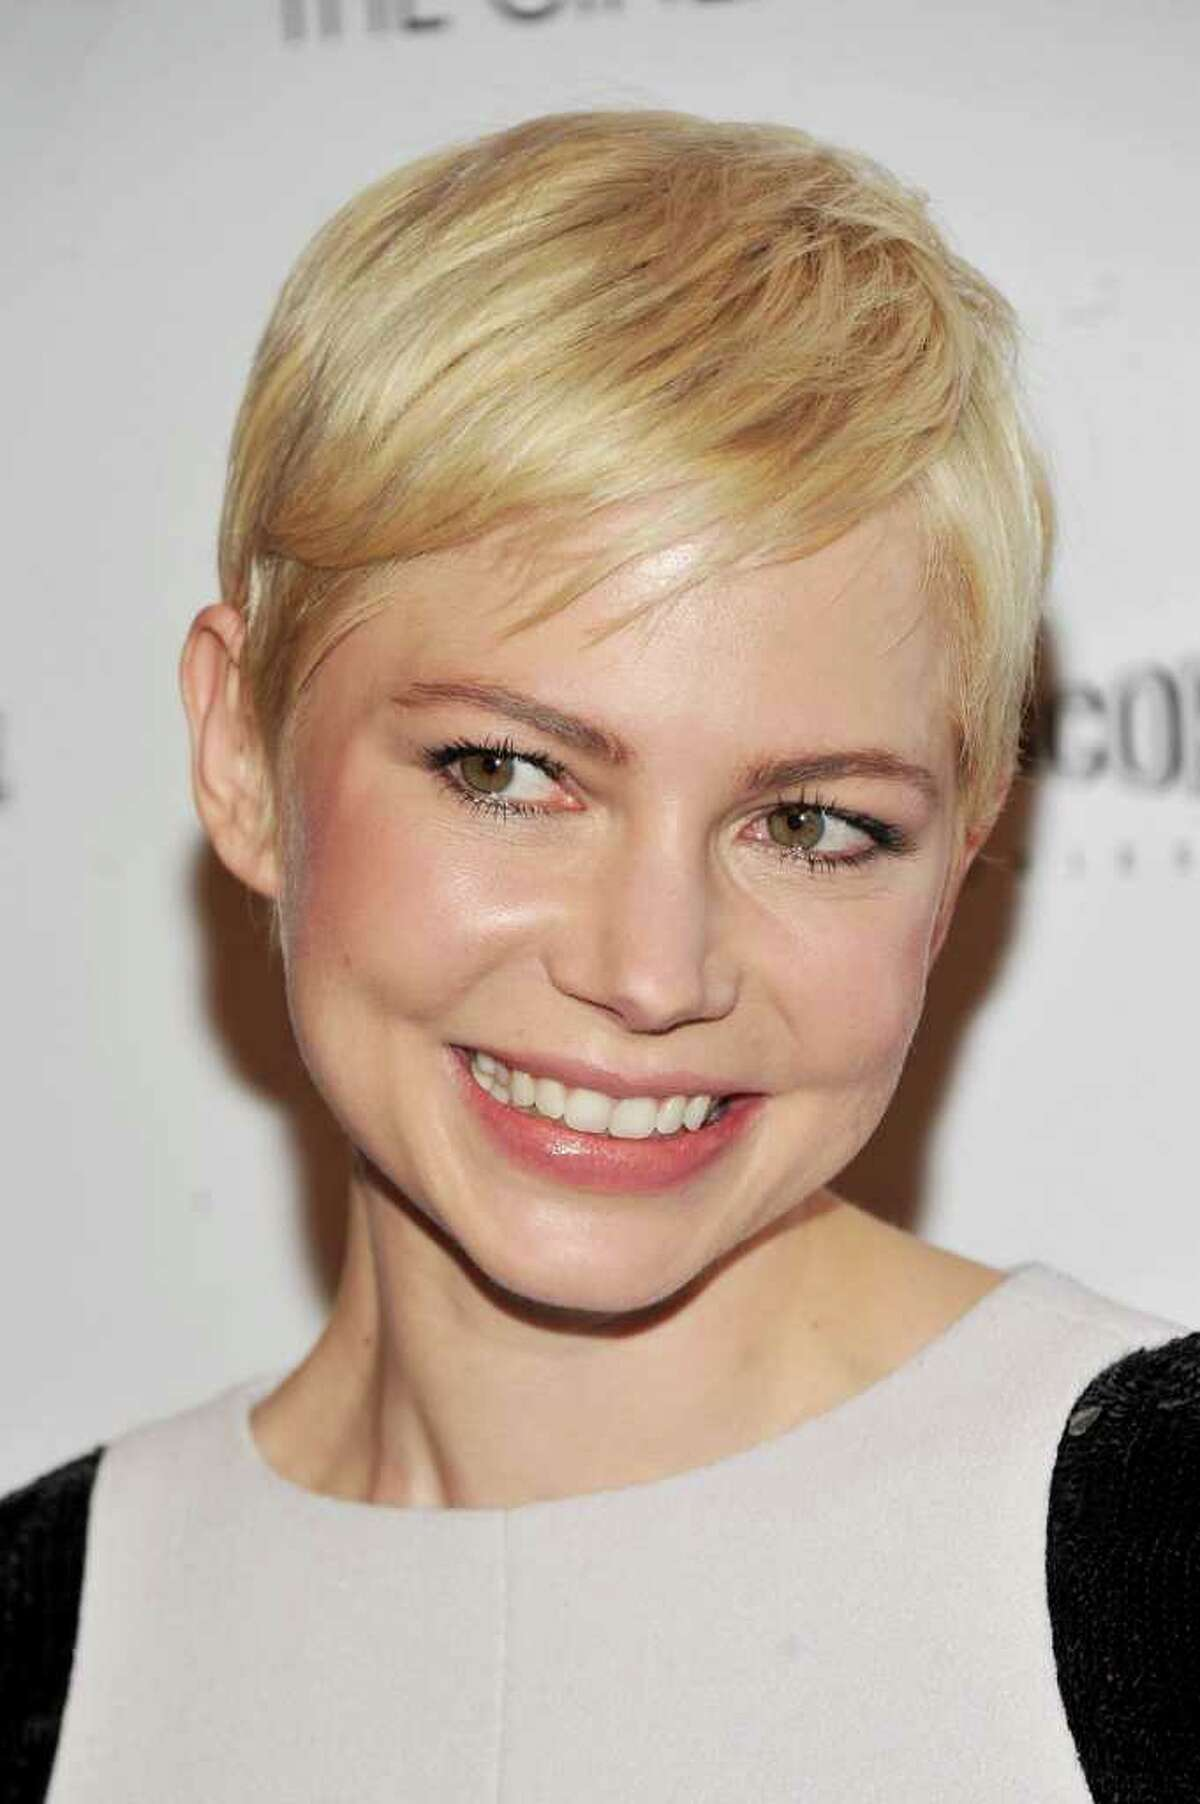 Actress Michelle Williams attends The Cinema Society & Nancy Gonzalez screening of